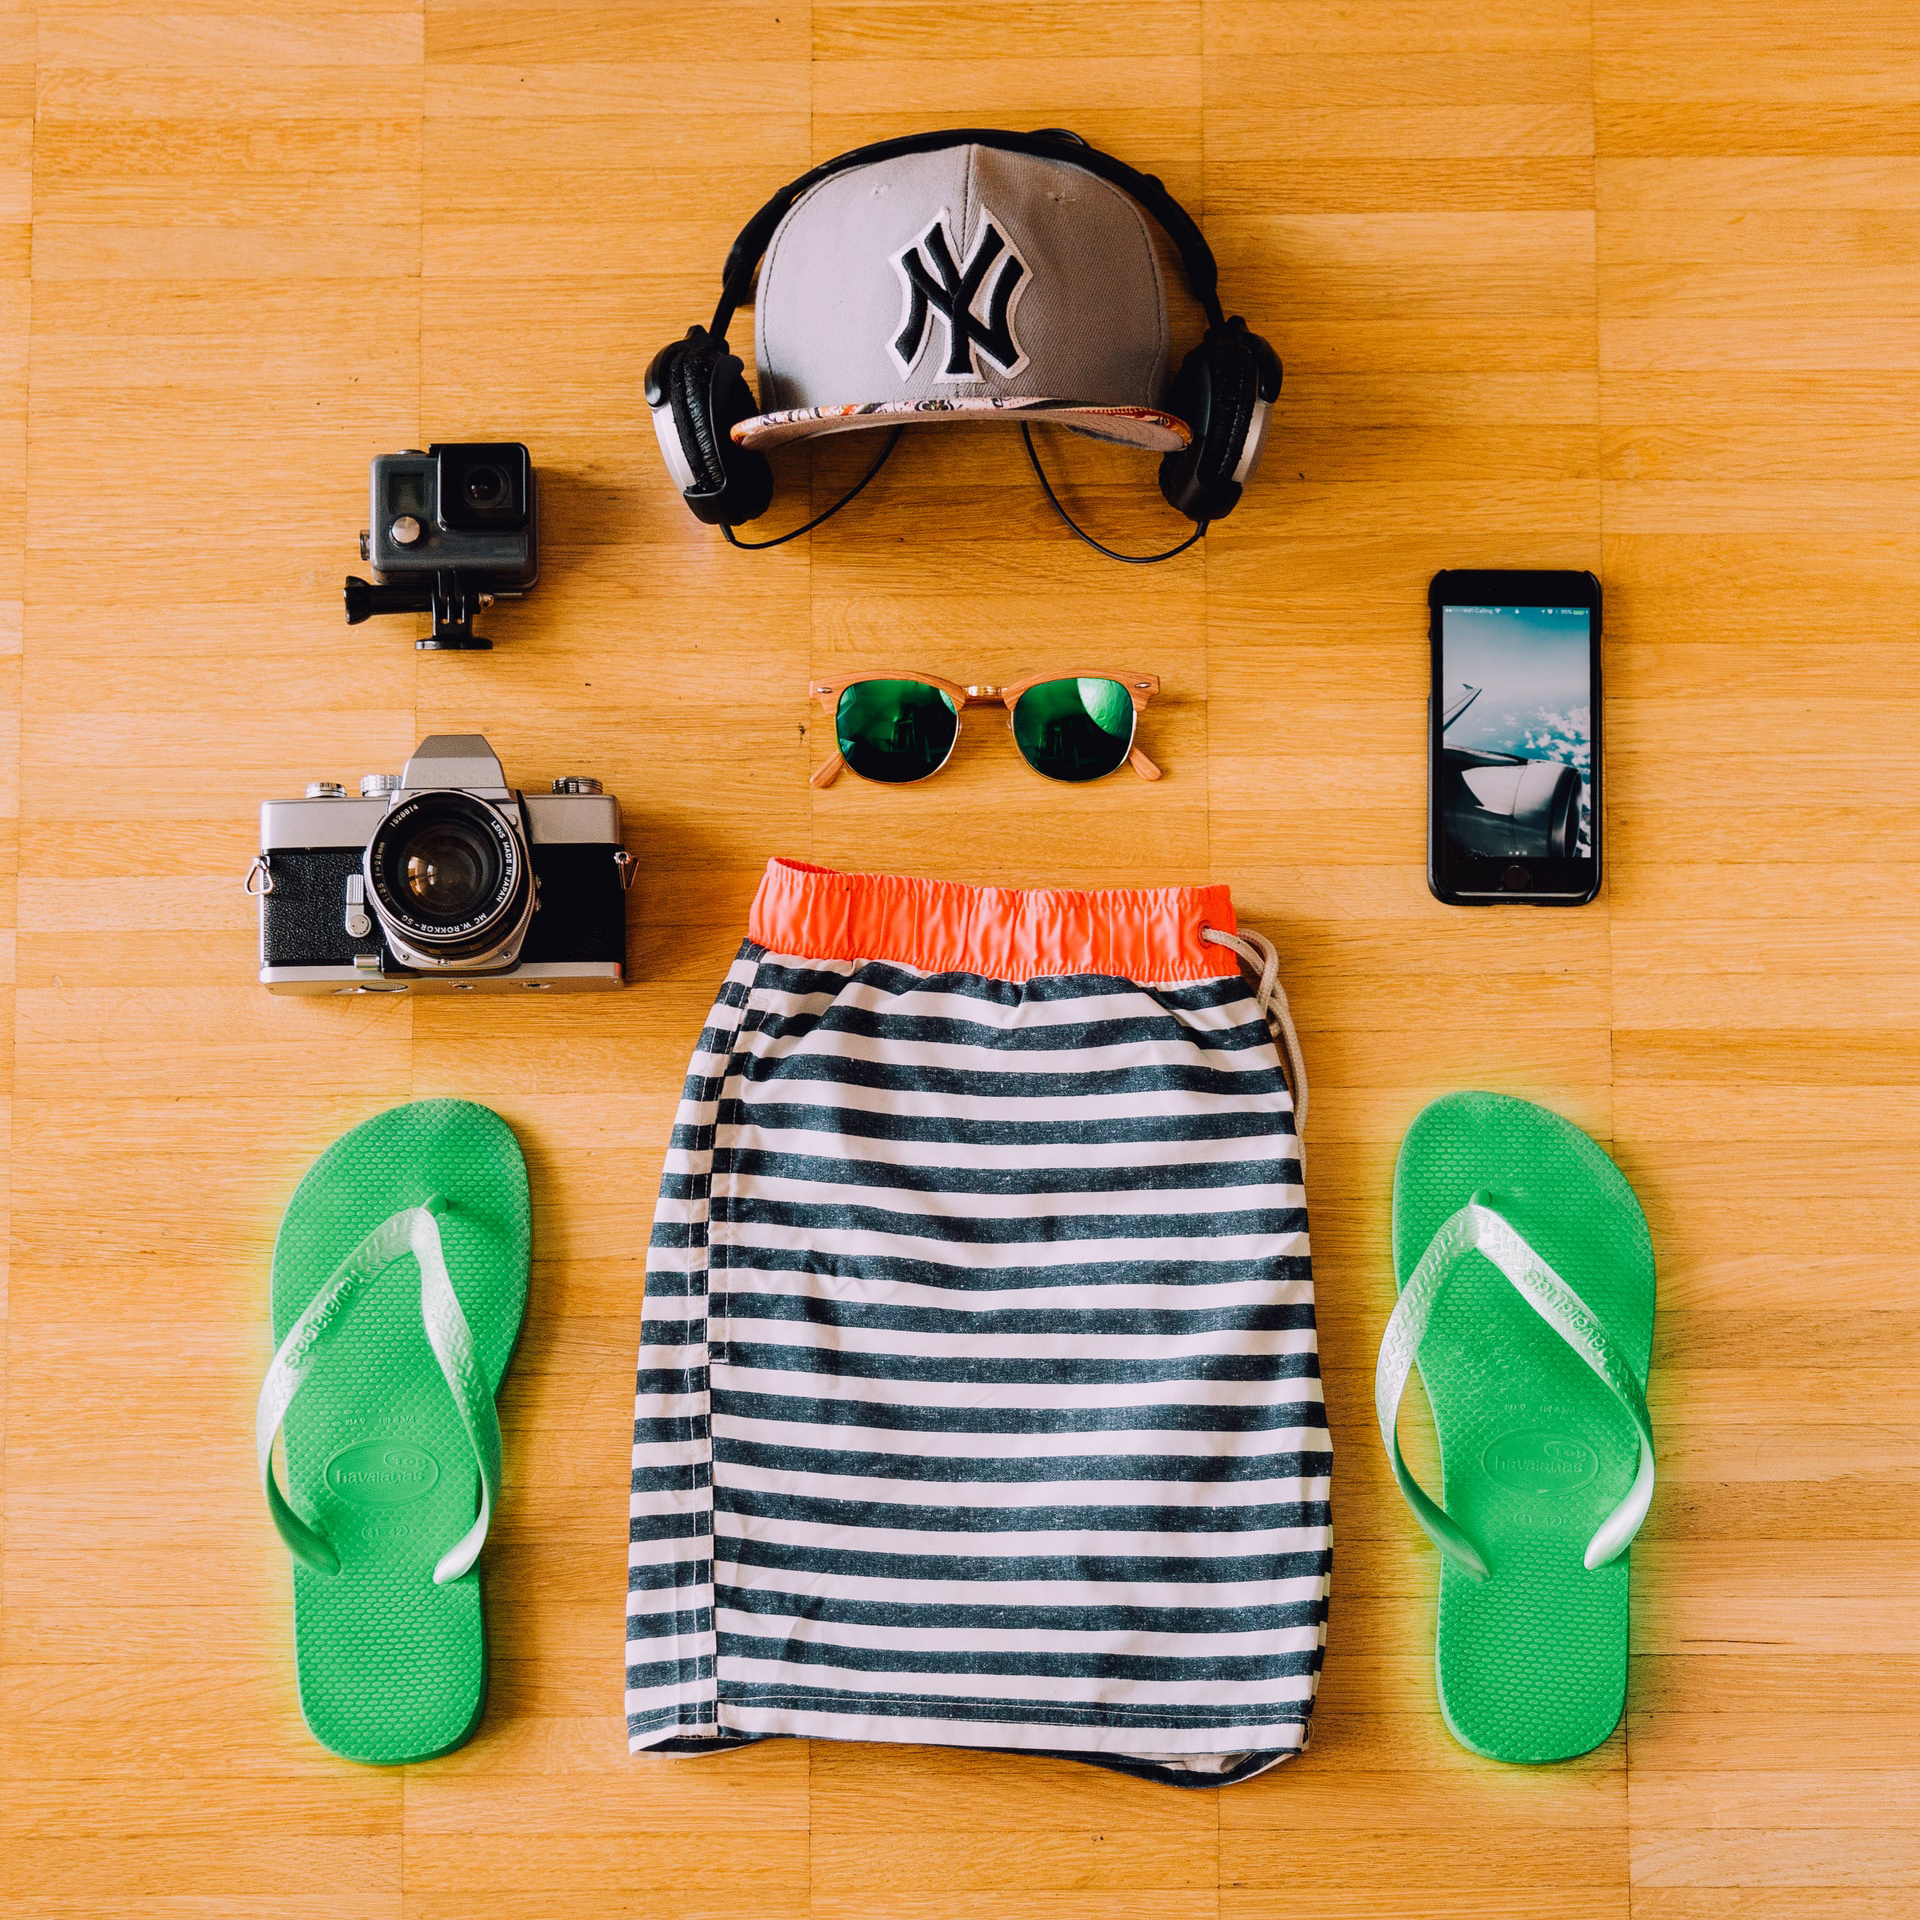 Preparing to Pack your summer gear for storage